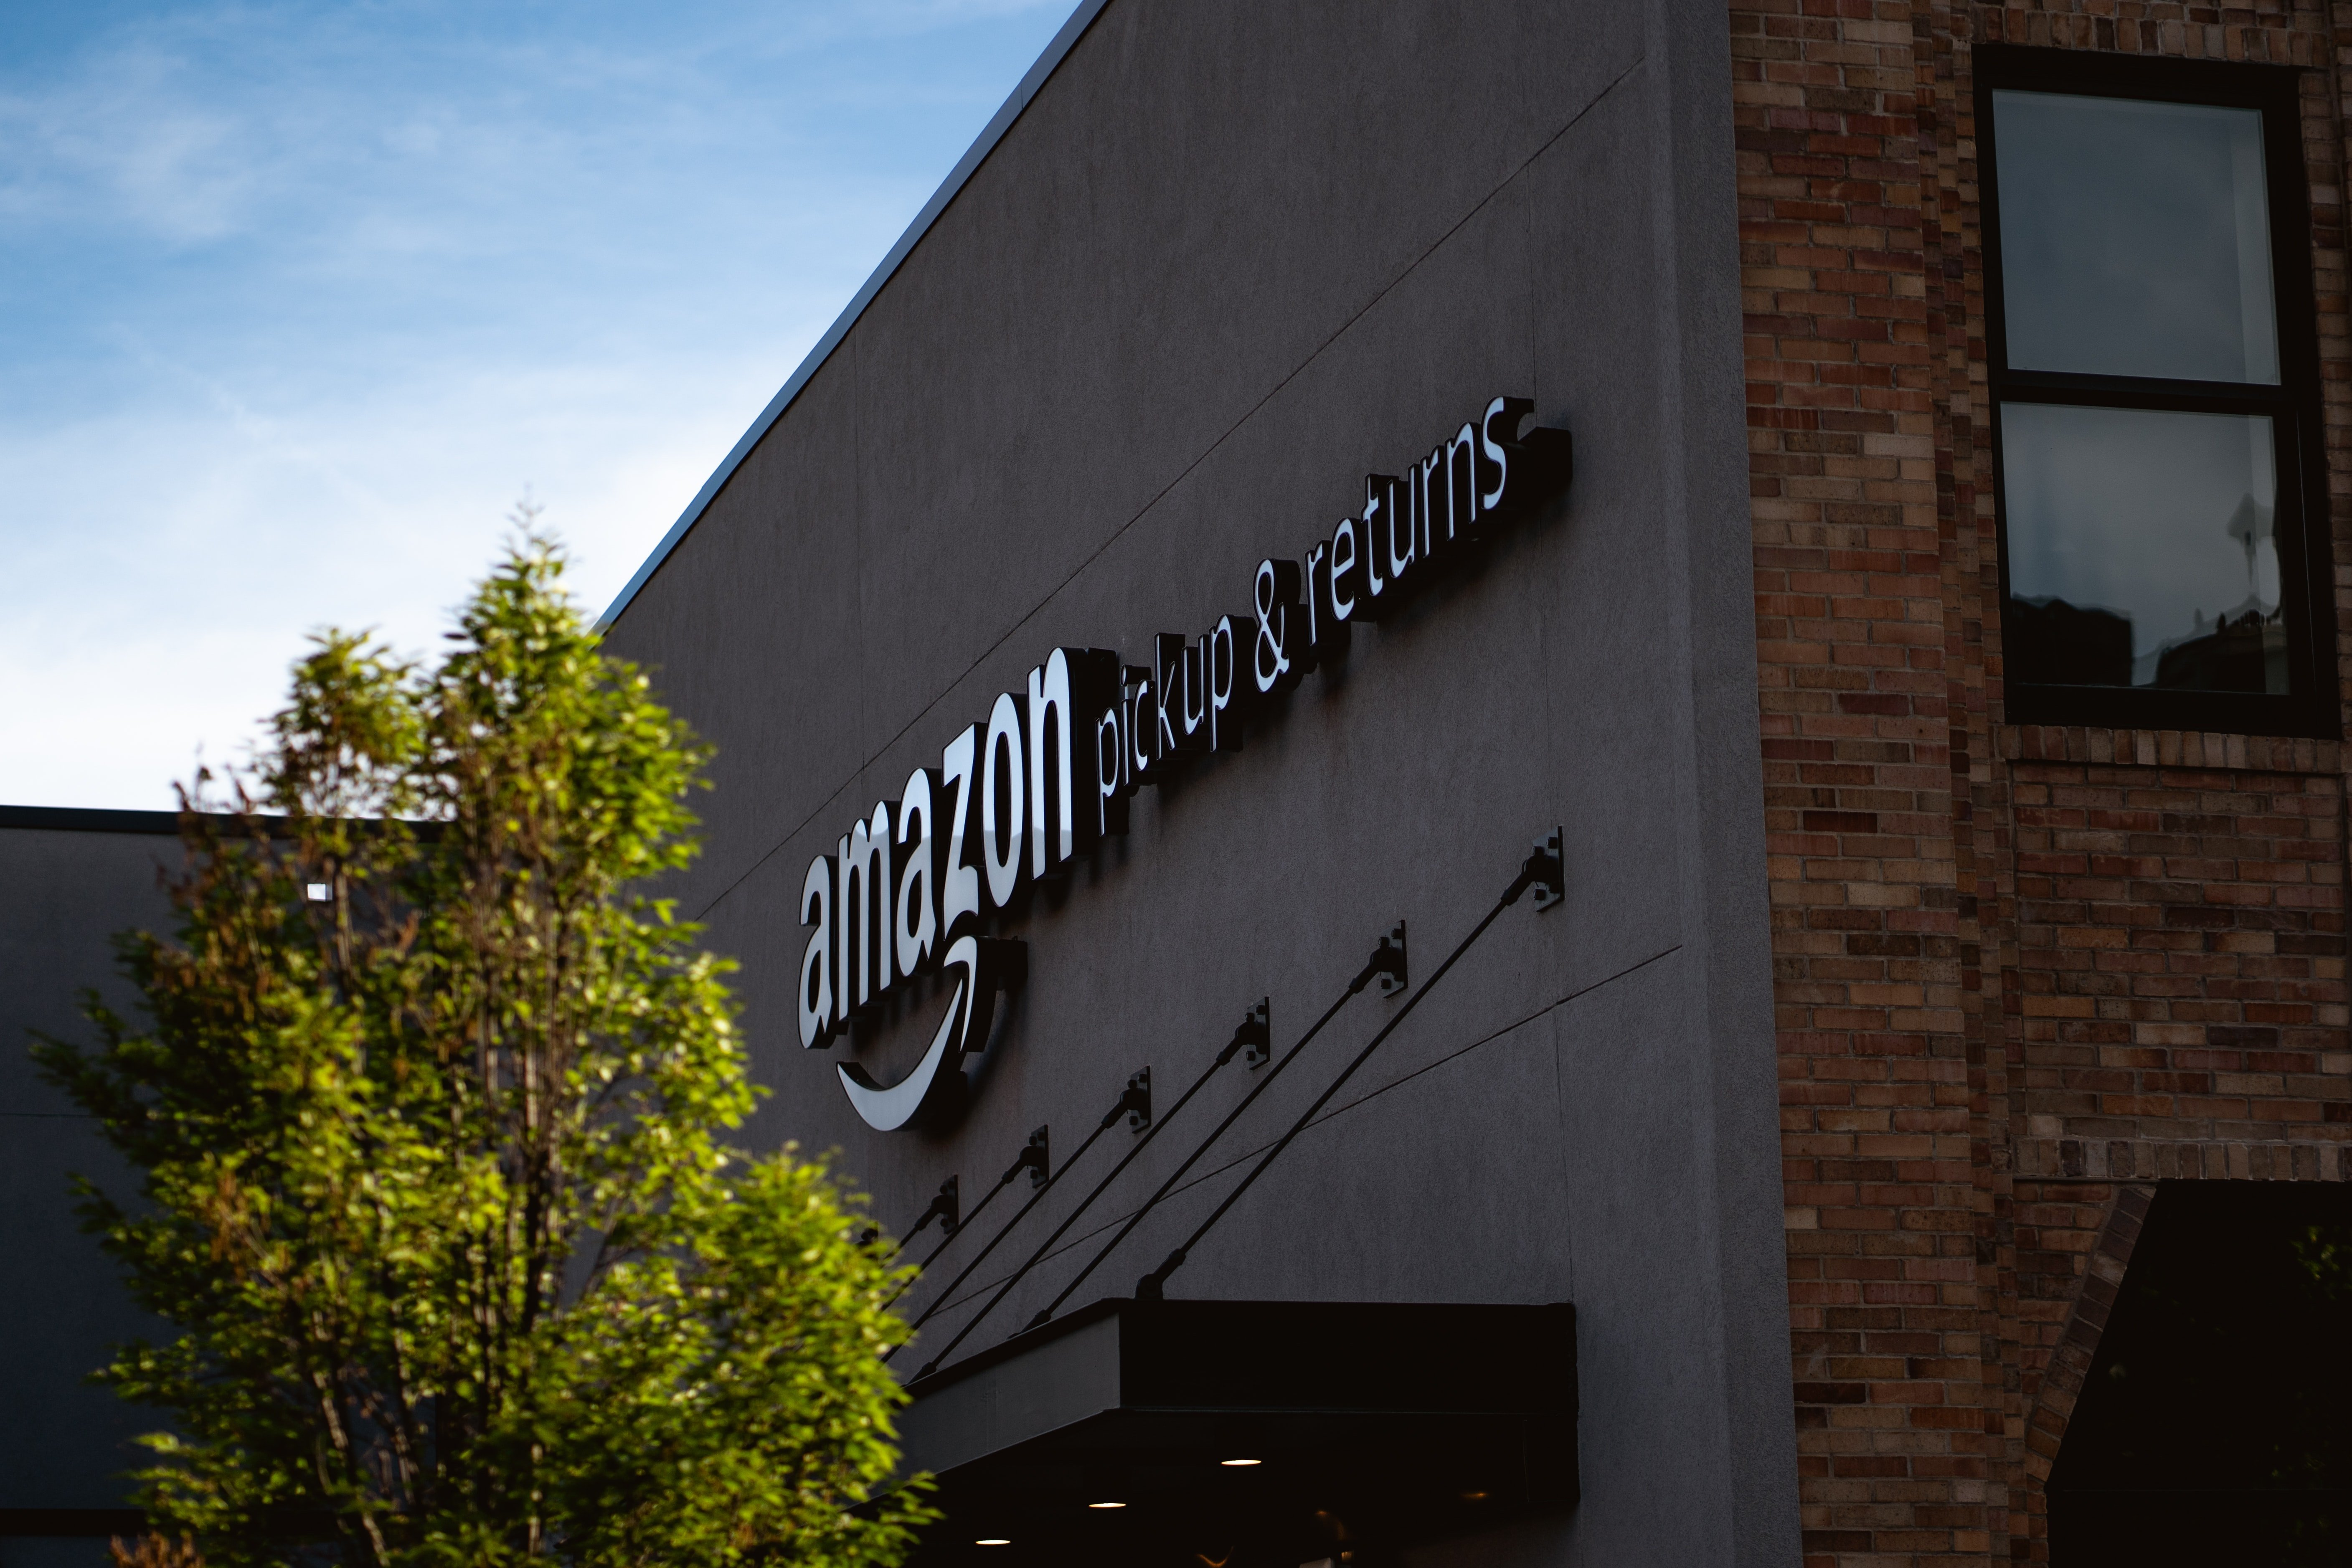 One of the Amazon buildings that houses their pickups and returns   Photo: Unsplash/Bryan Angelo